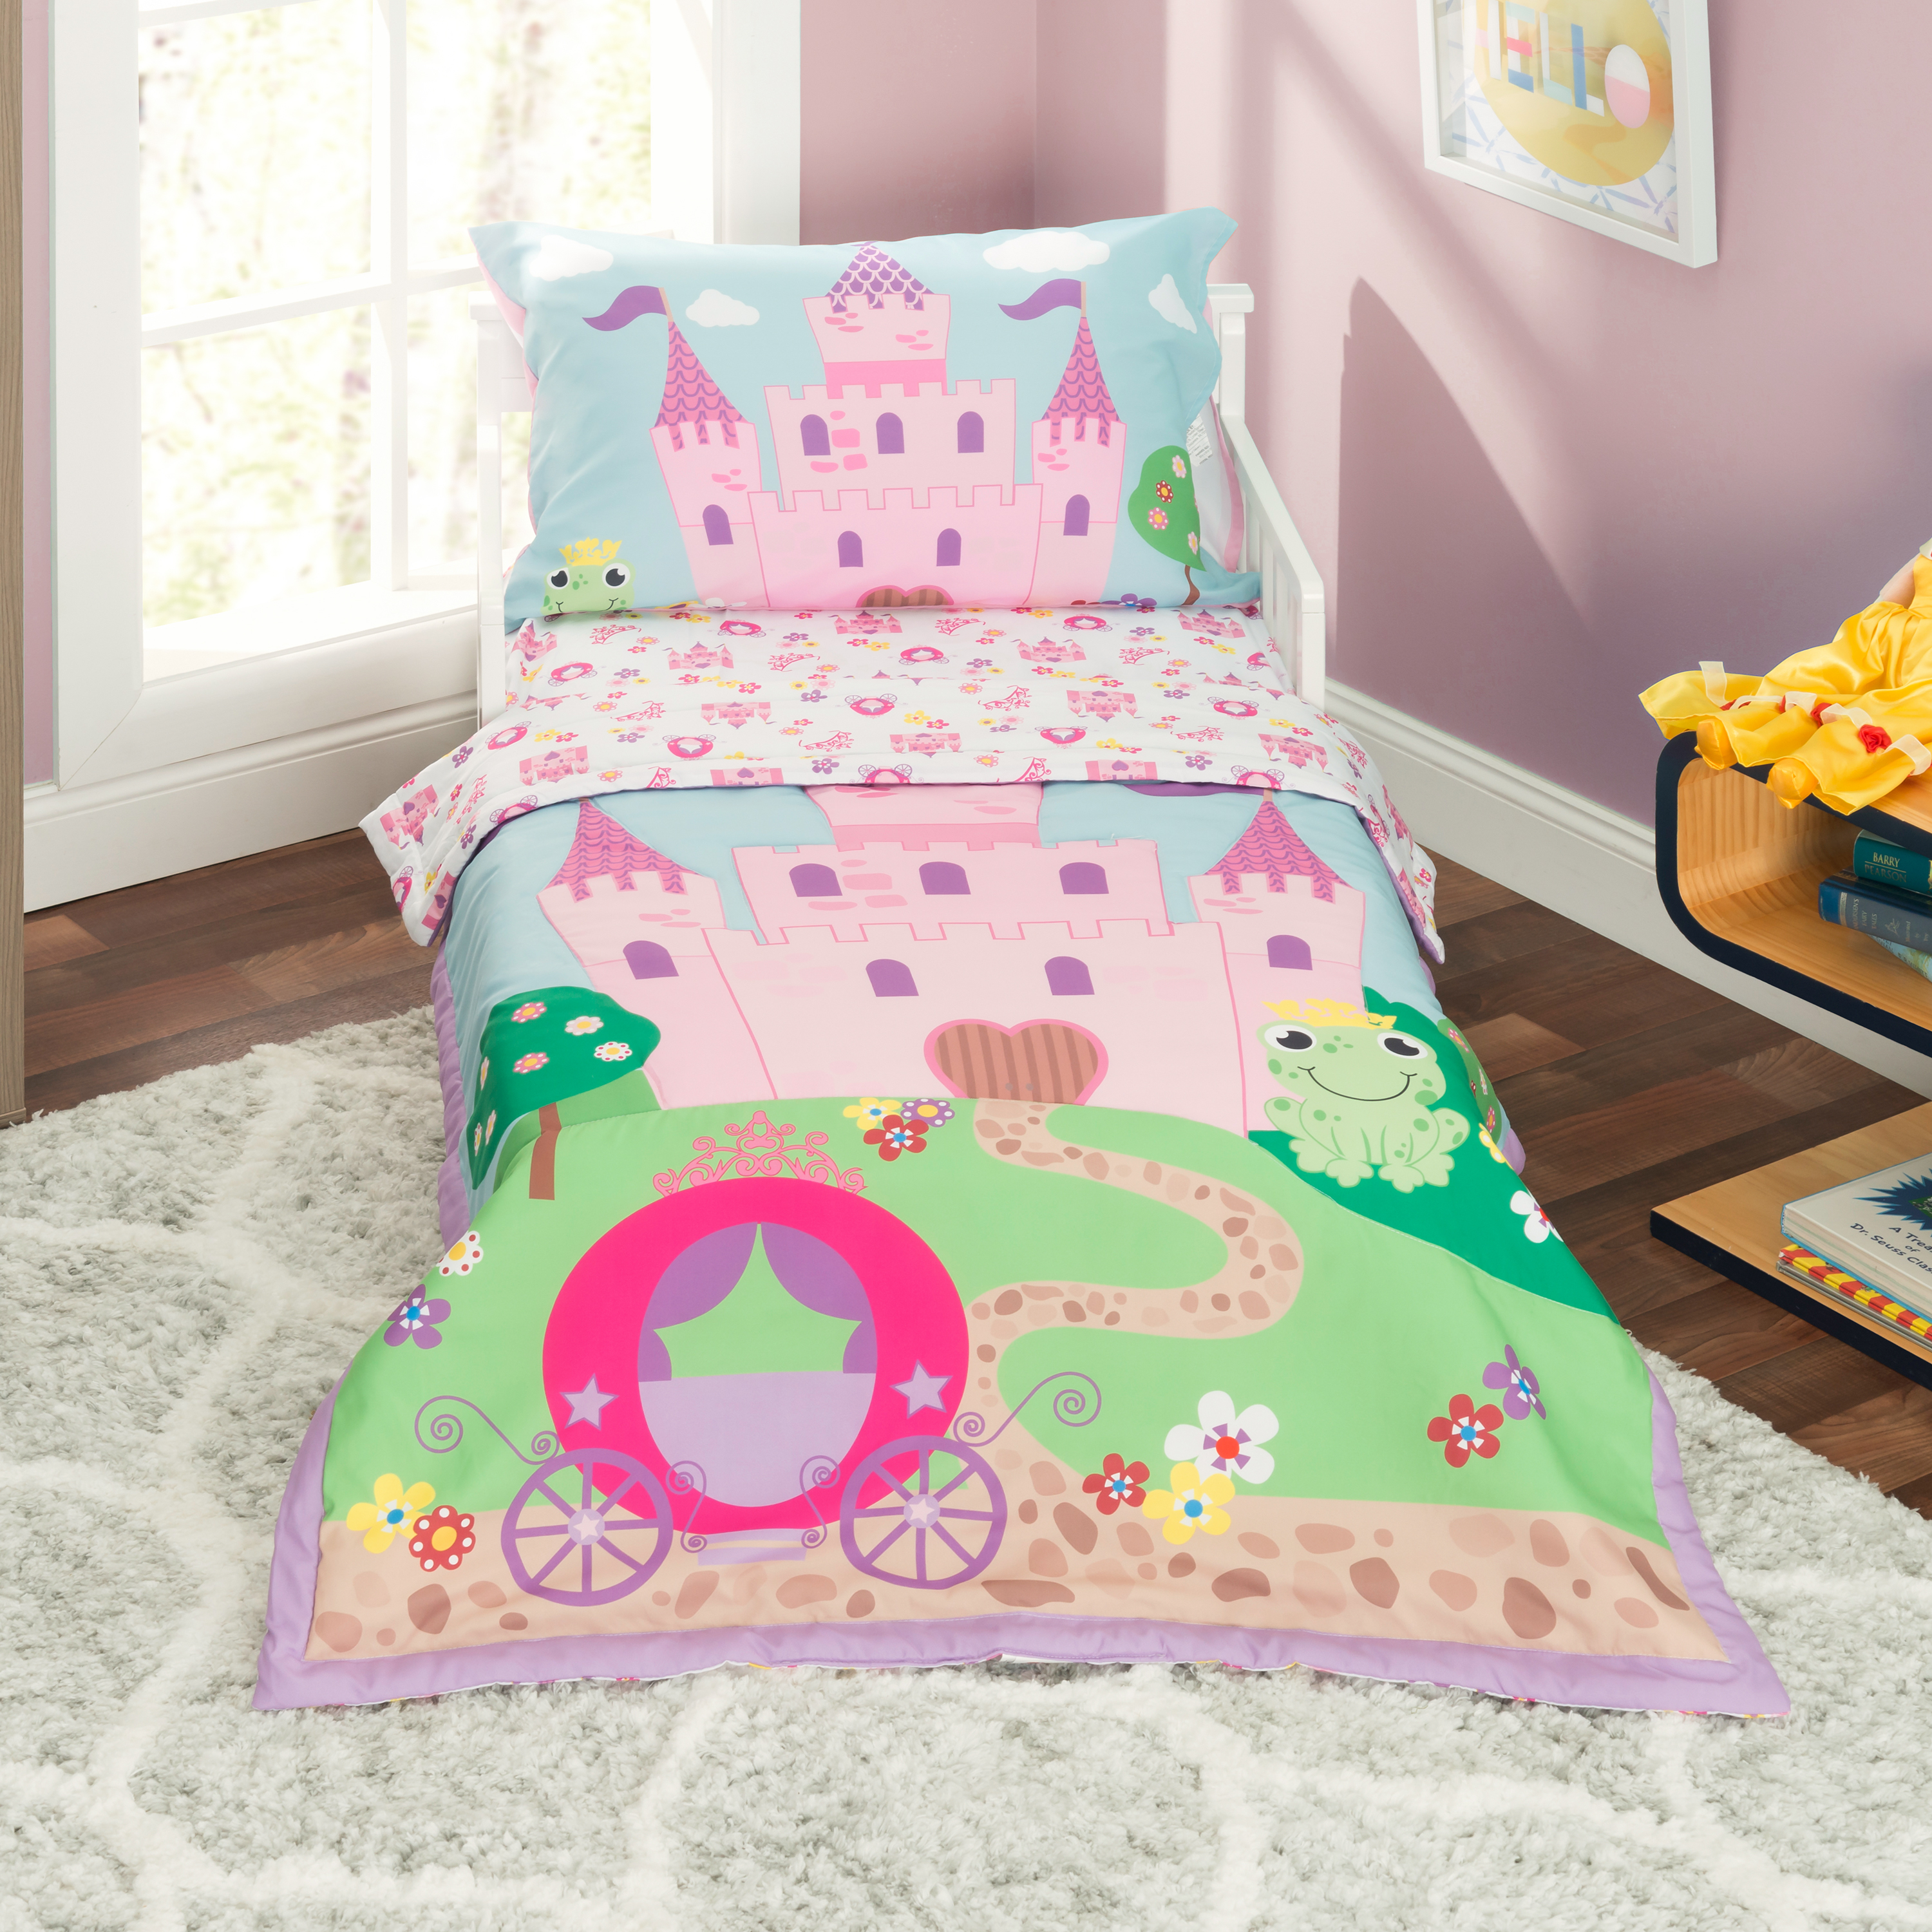 Everyday Kids 4 Piece Toddler Bedding Set -Princess Storyland